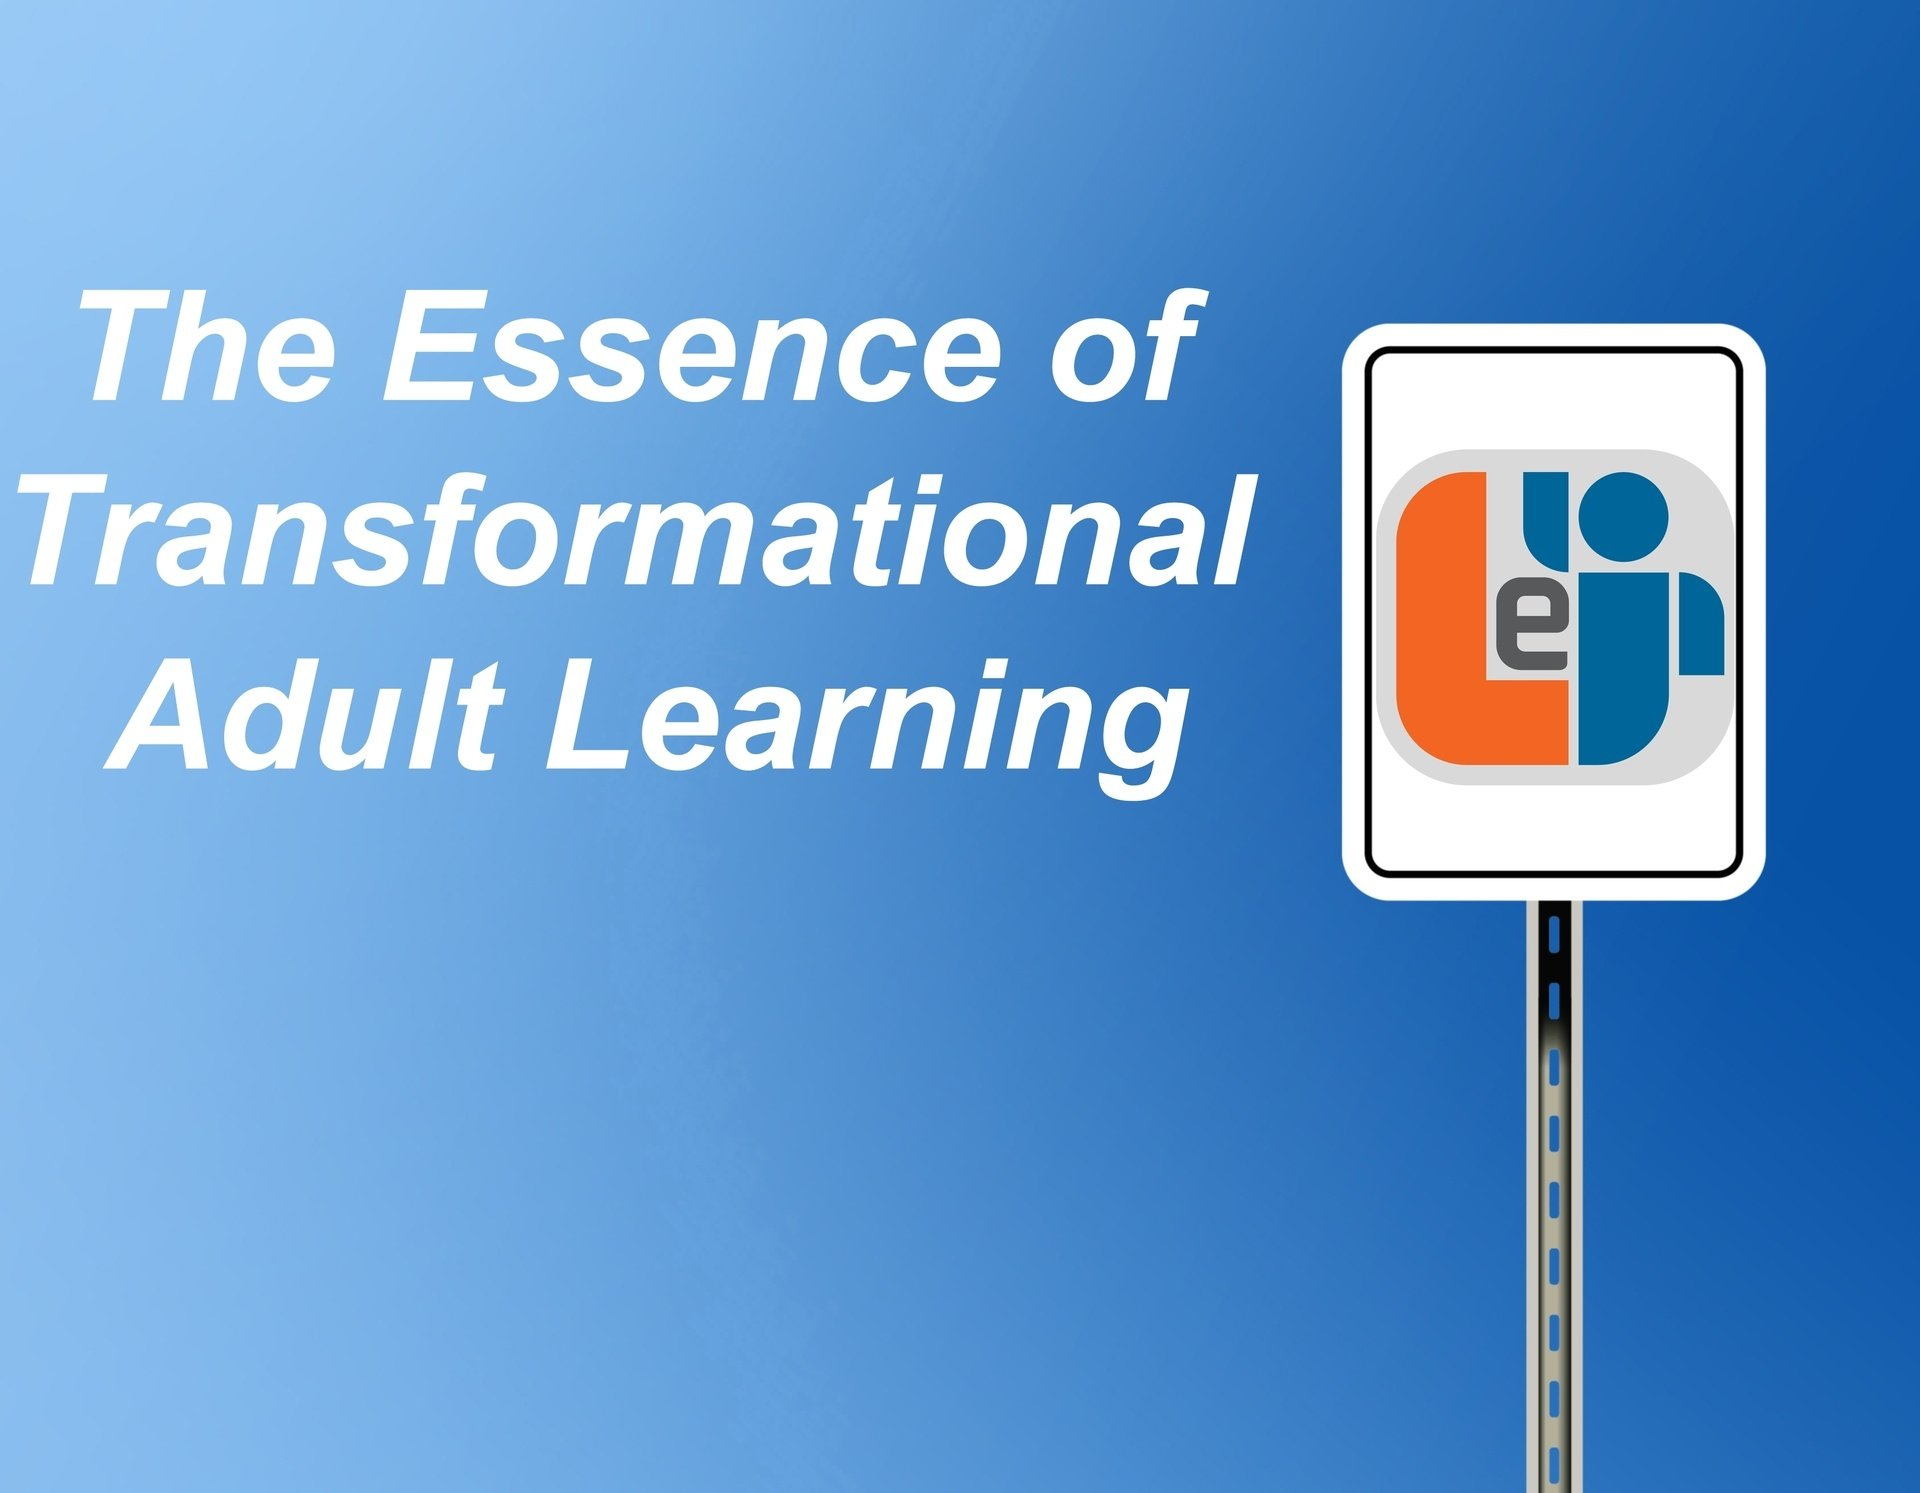 The Essence of Transformational Adult Learning